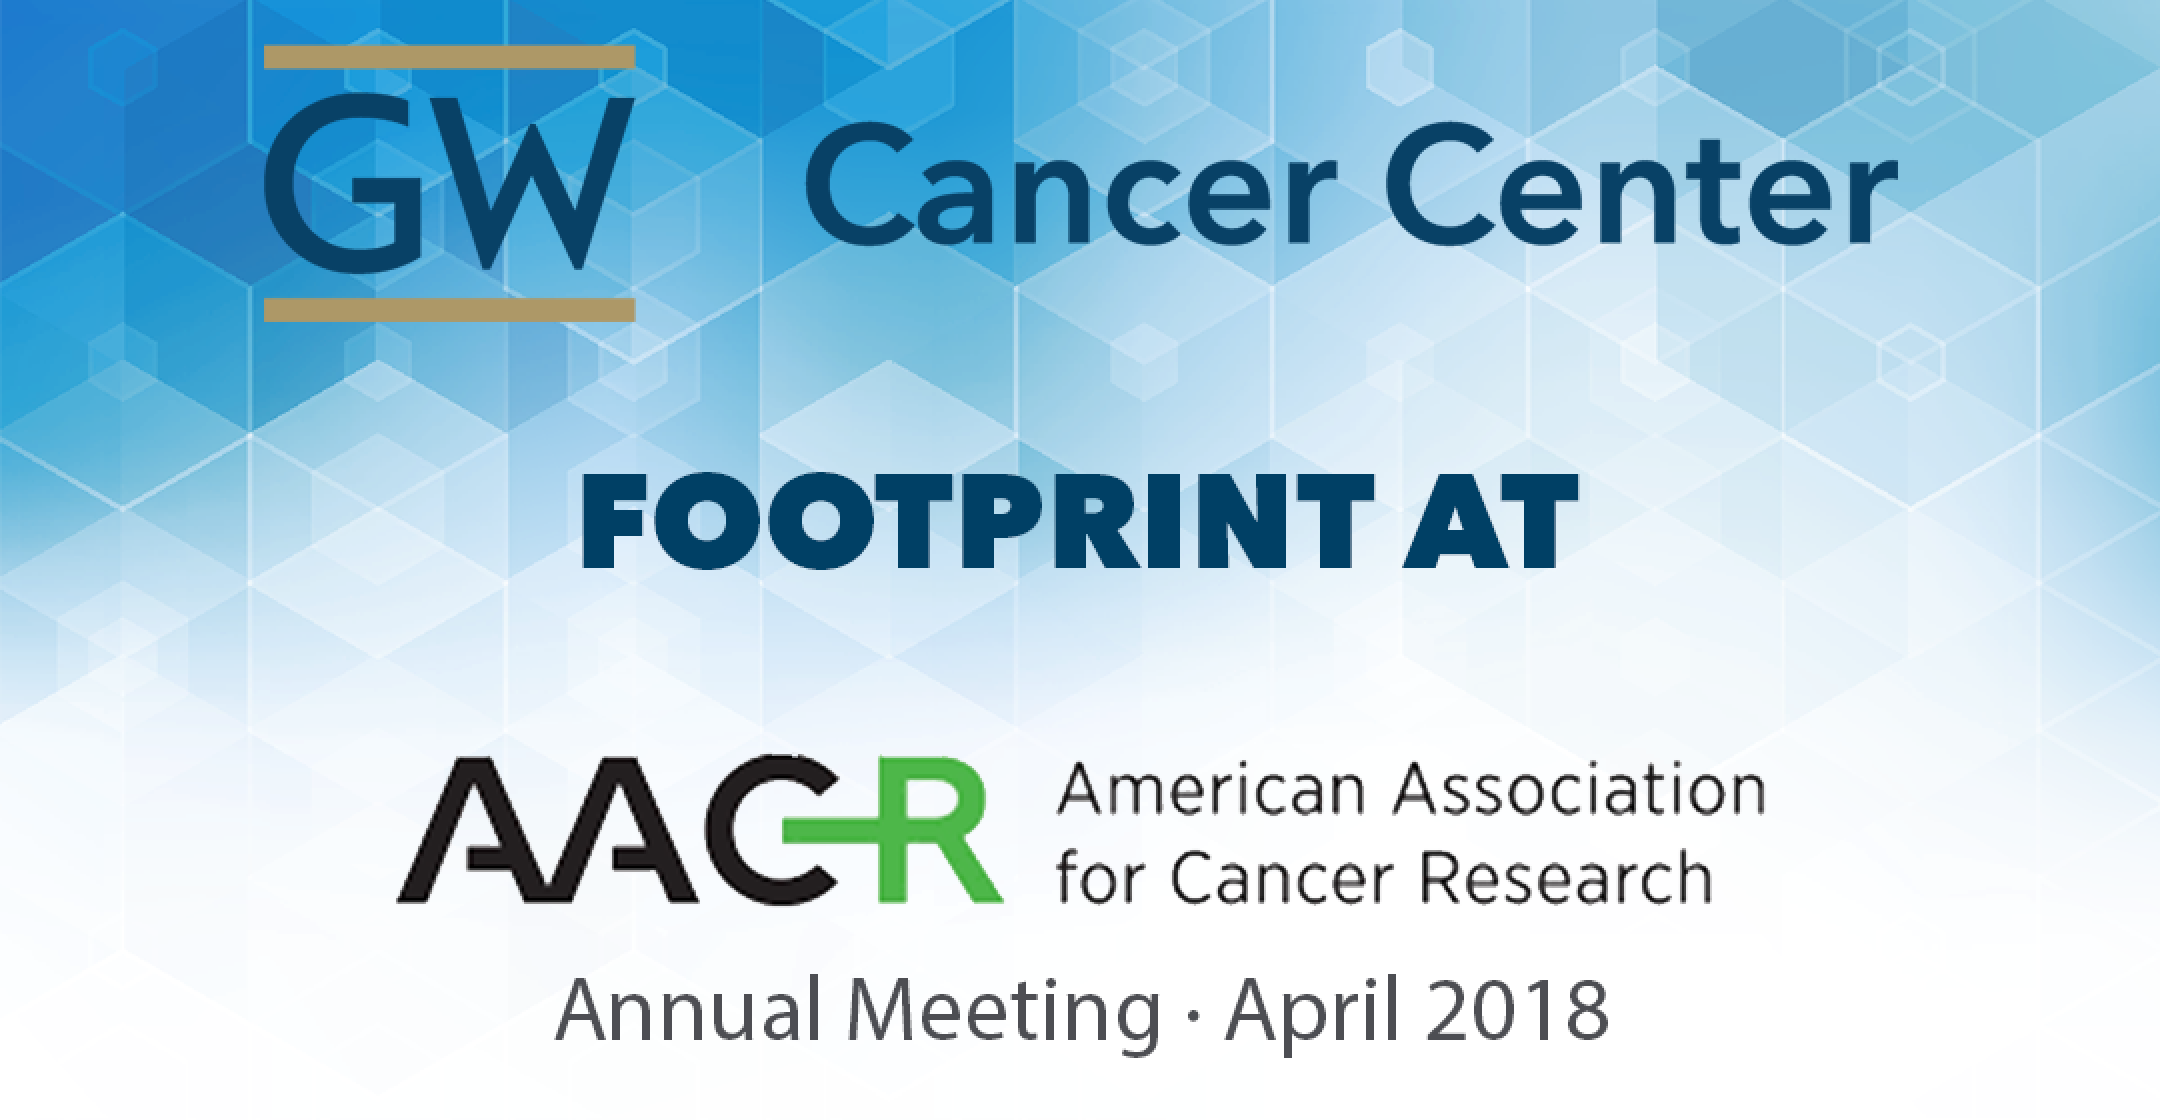 The GW Cancer Center Footprint at AACR 2018